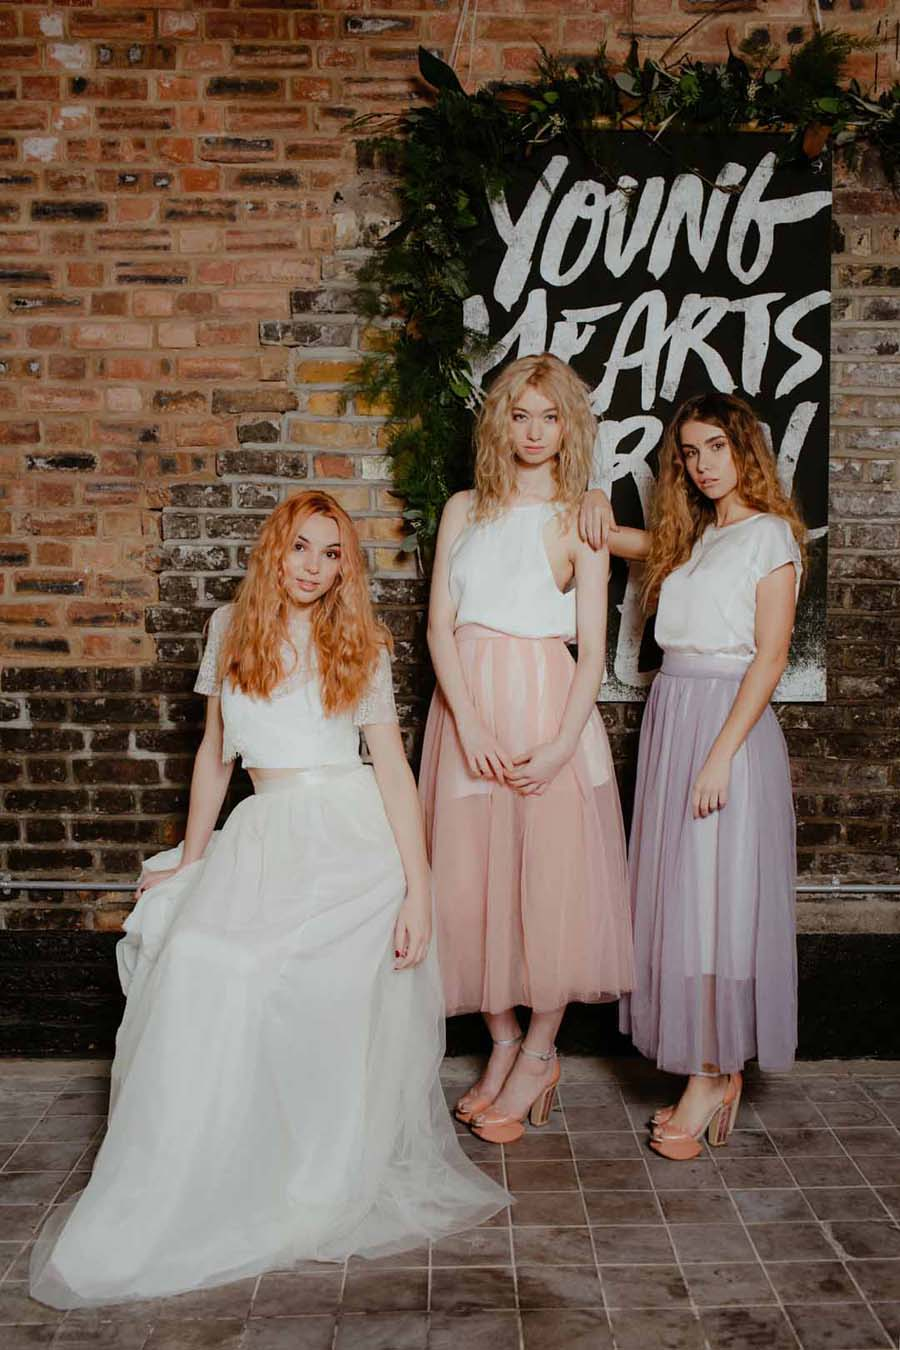 Tired of seeing the 'same old same old' when it comes to bridesmaid dresses? Wish there was something a whole lot cooler than your traditional bridesmaid gown?